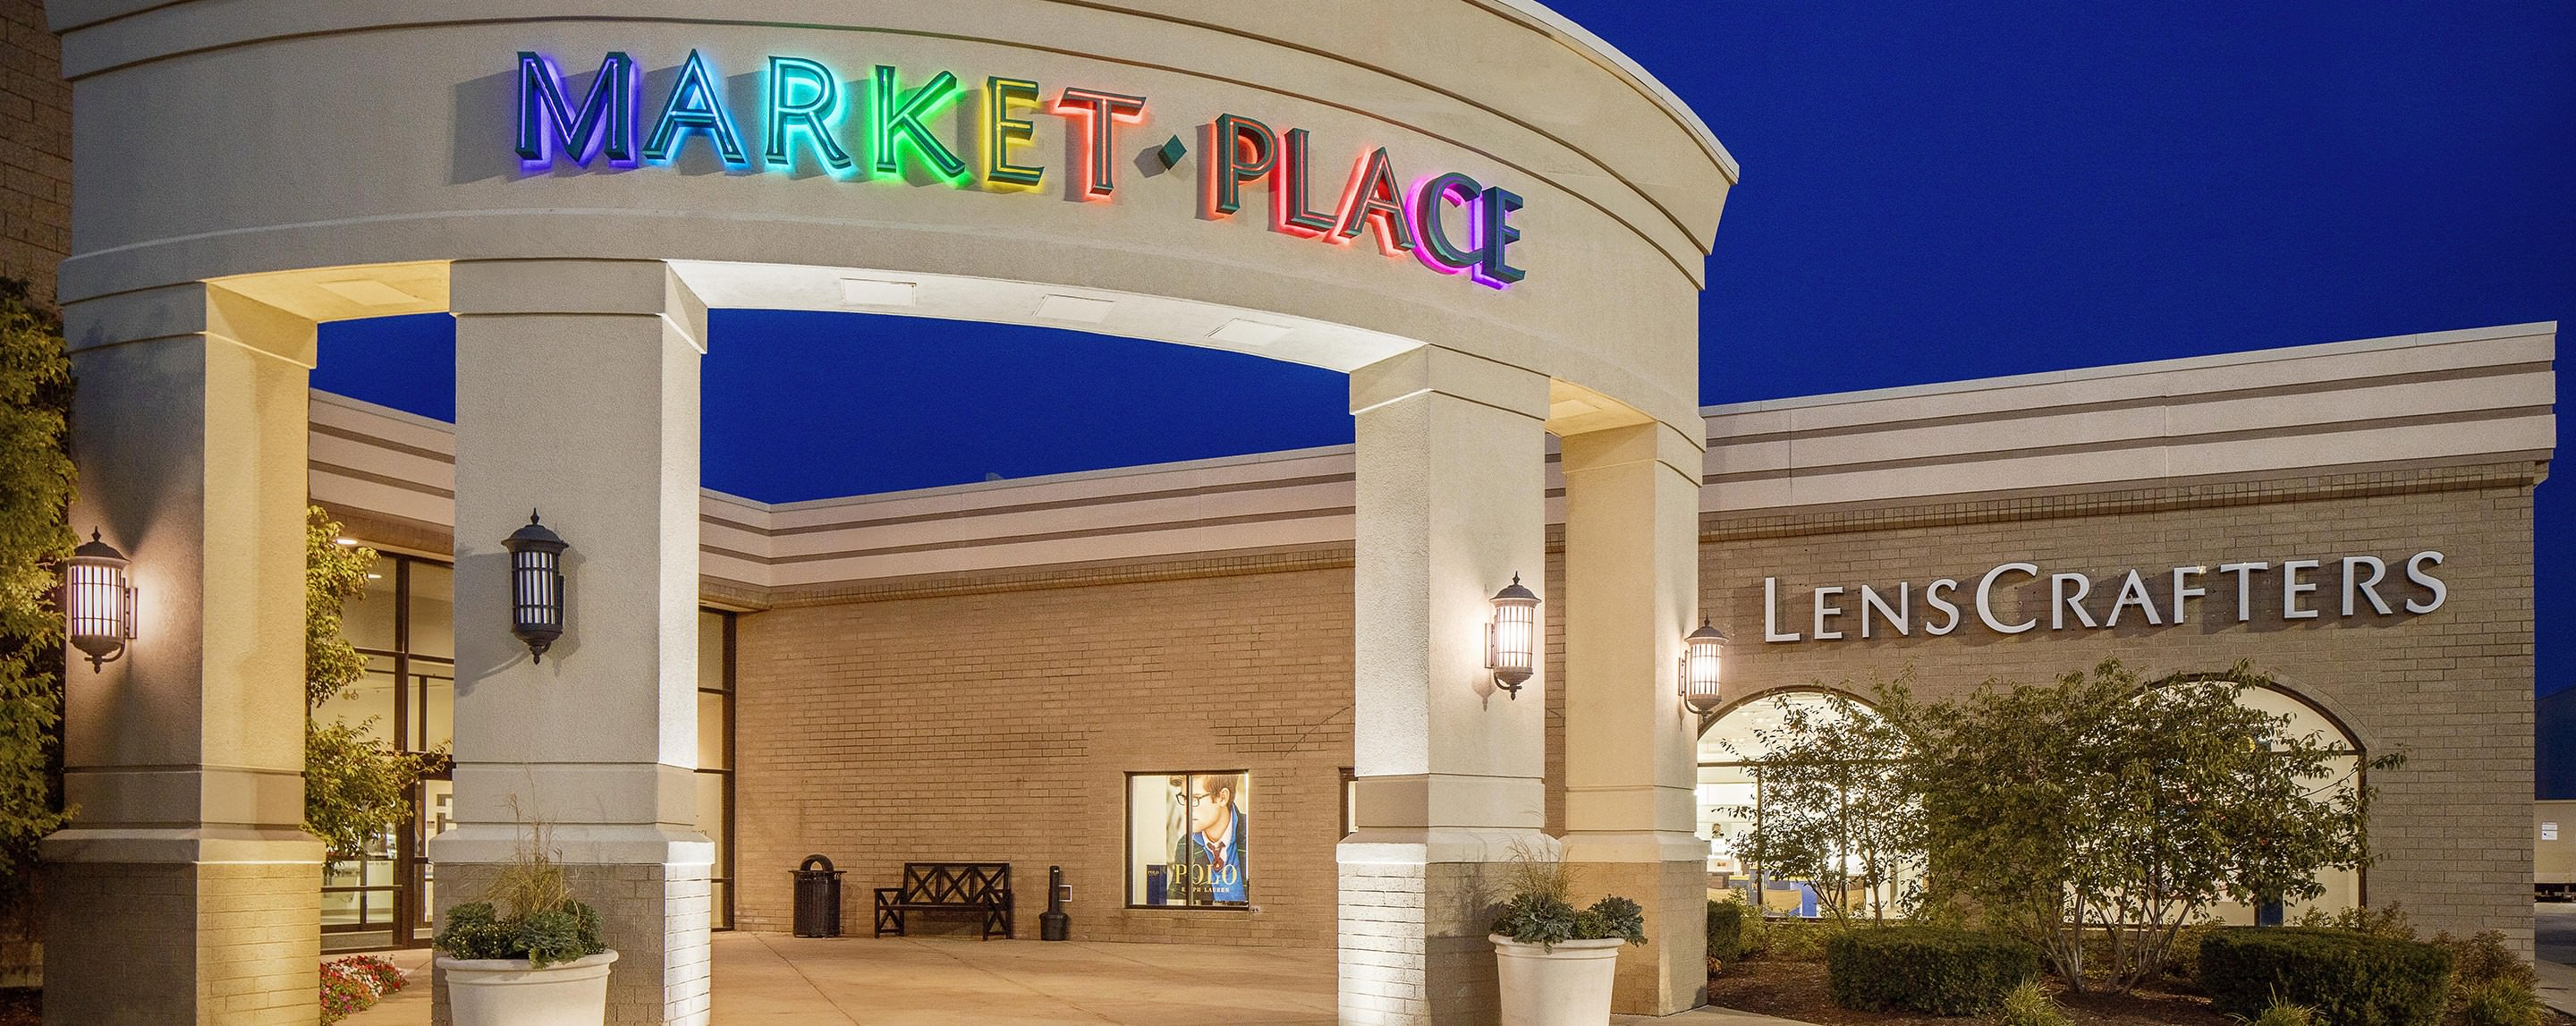 A colorful Market Place sign is lit up and is displayed on the outside entrance of the building.